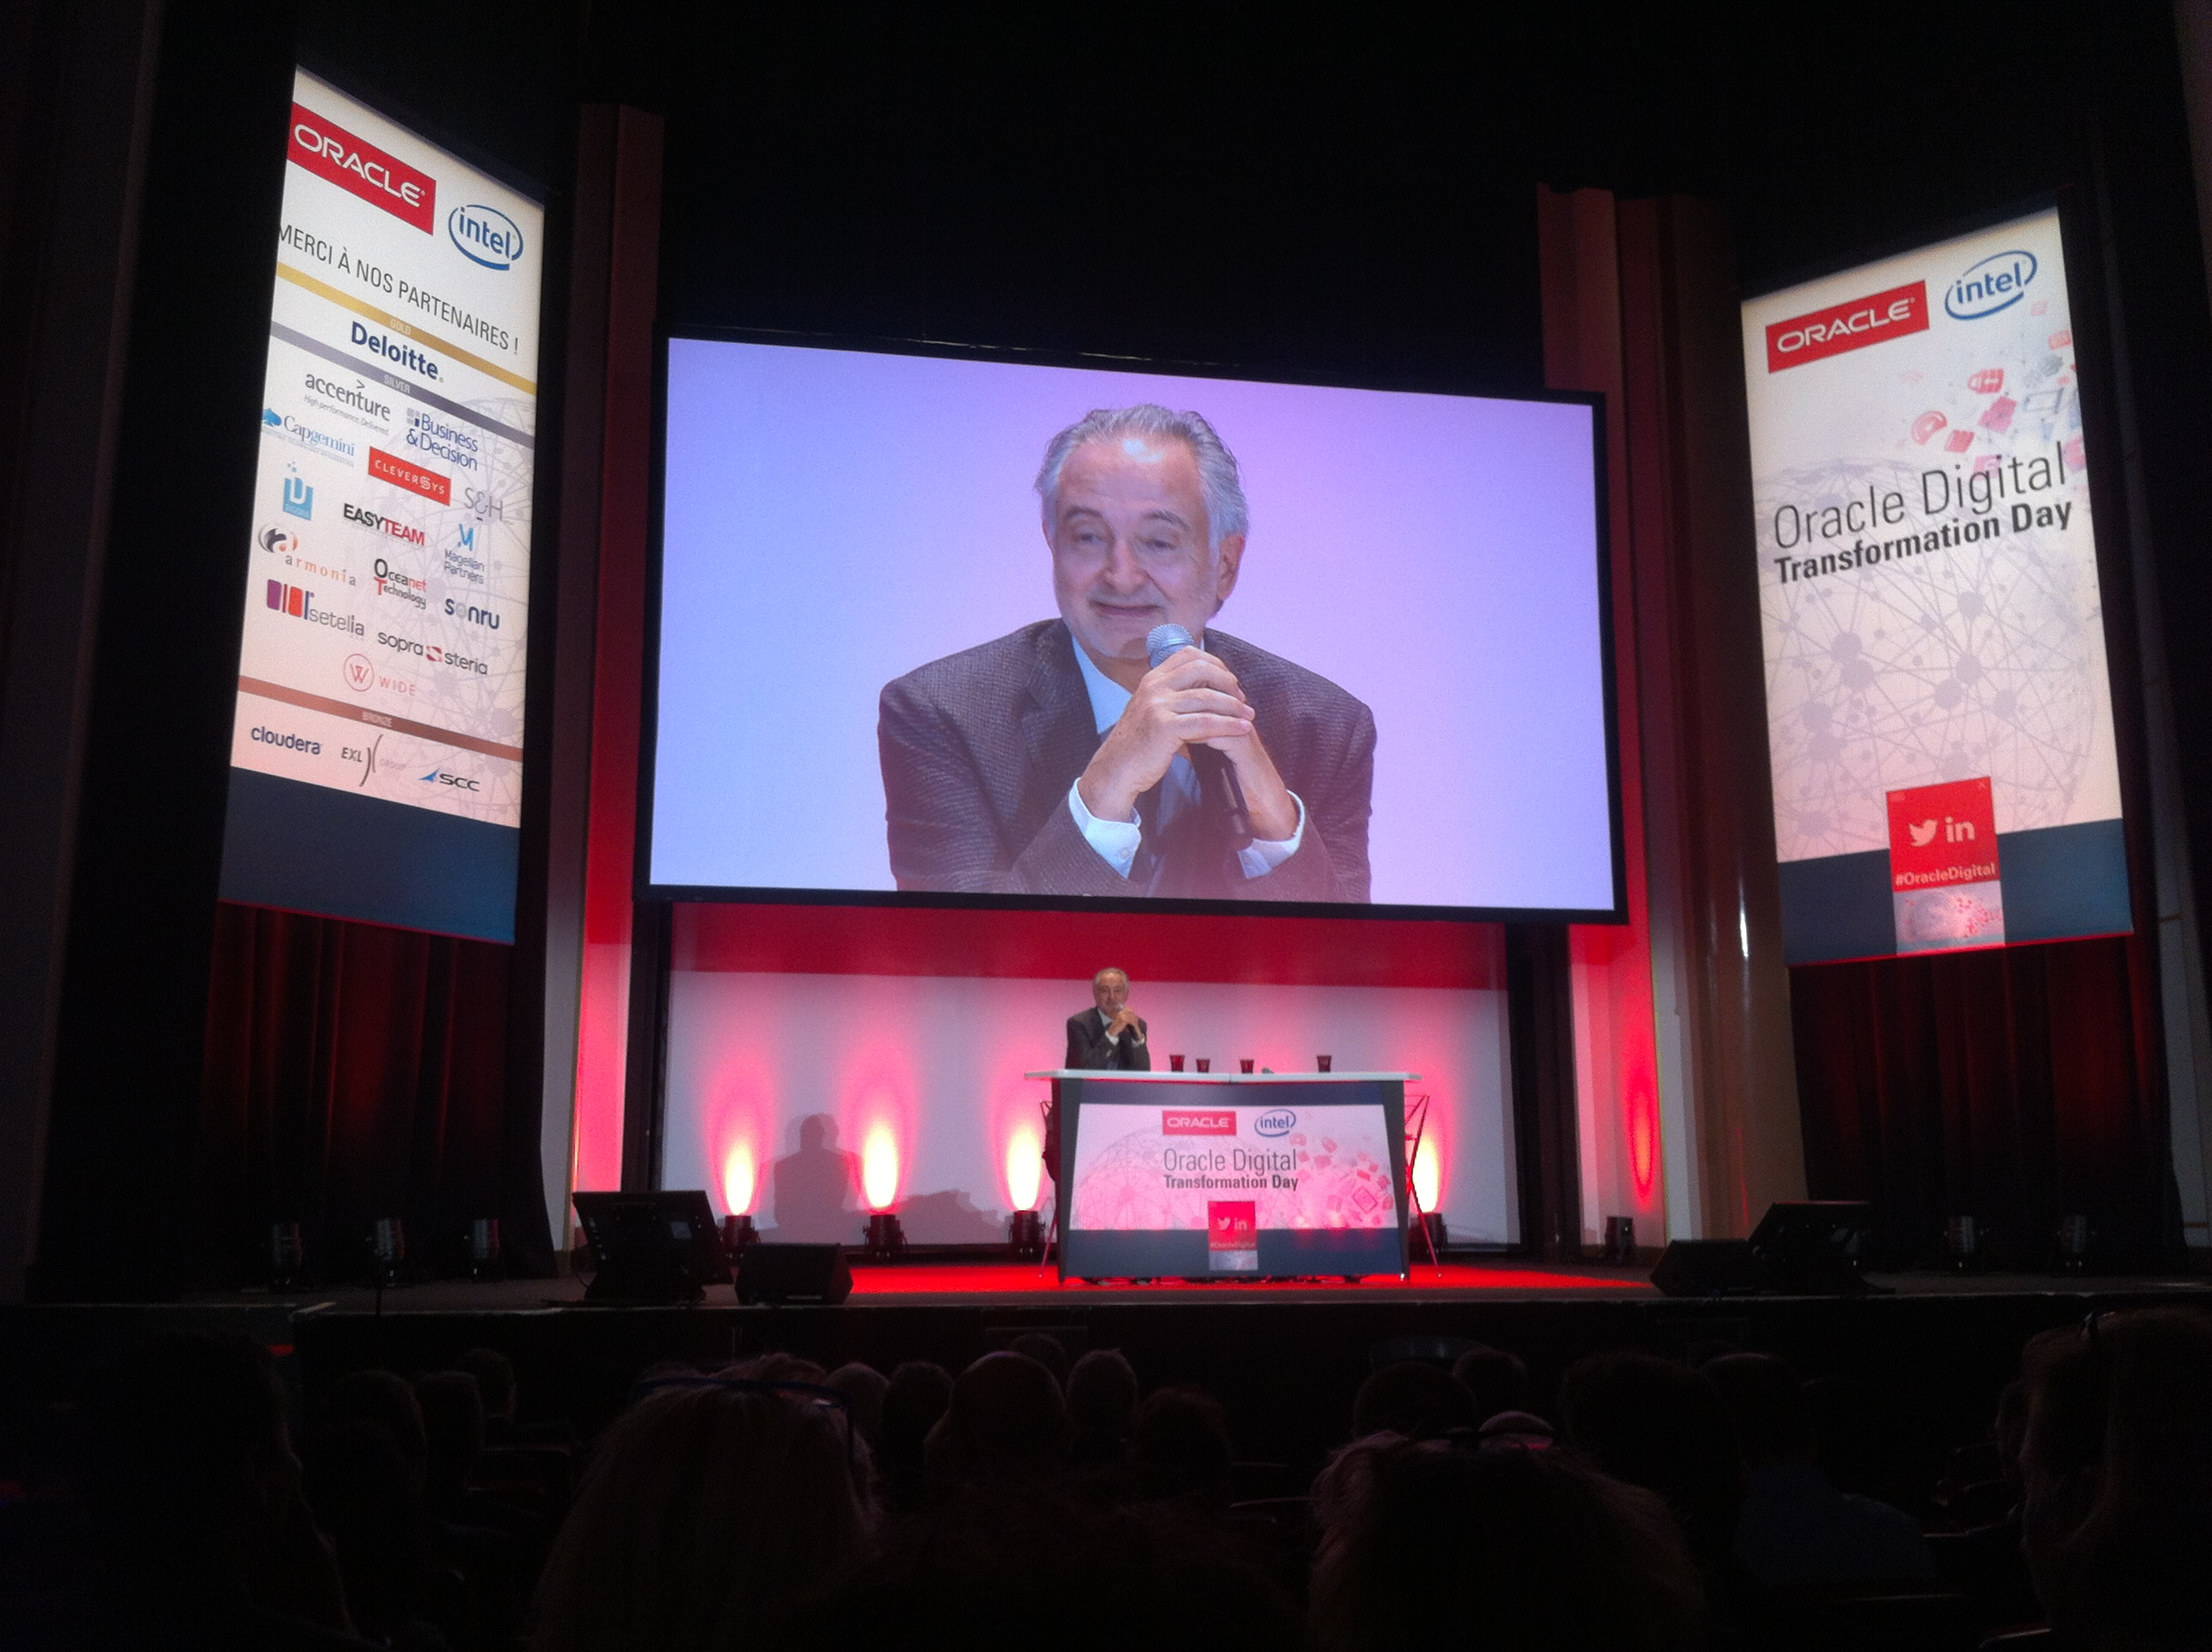 Oracle Digital Transformation Day : Intervention de Jacques Attali